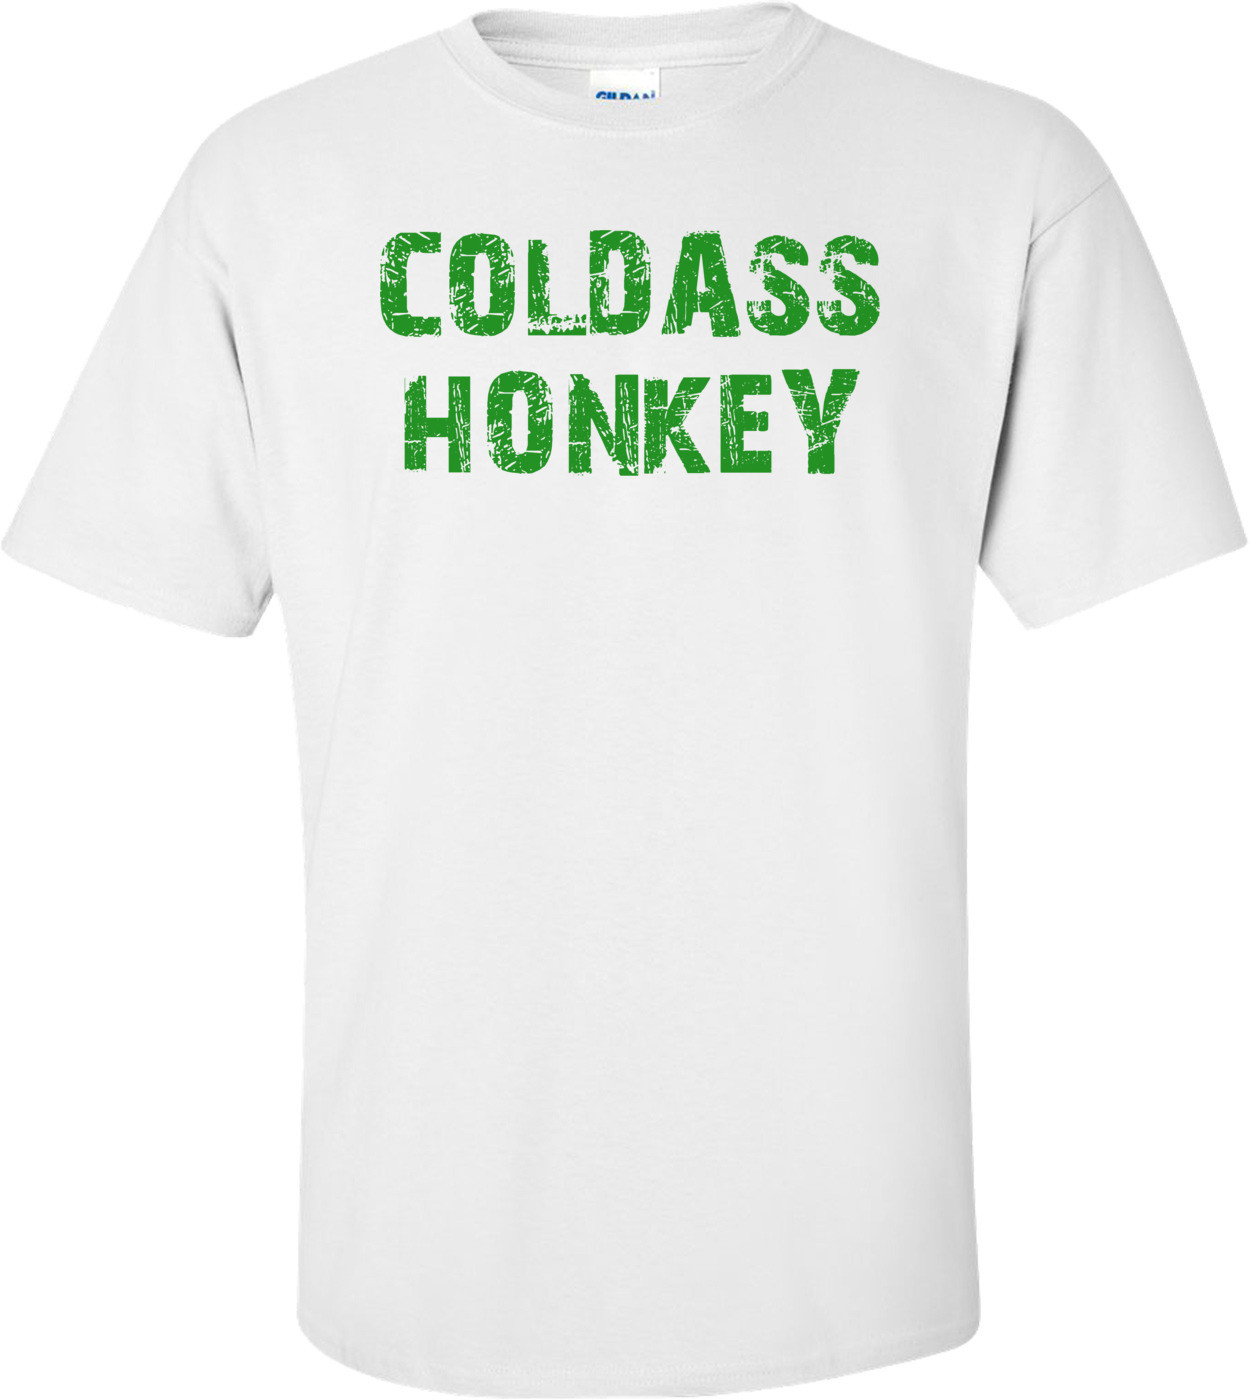 COLDASS HONKEY Shirt